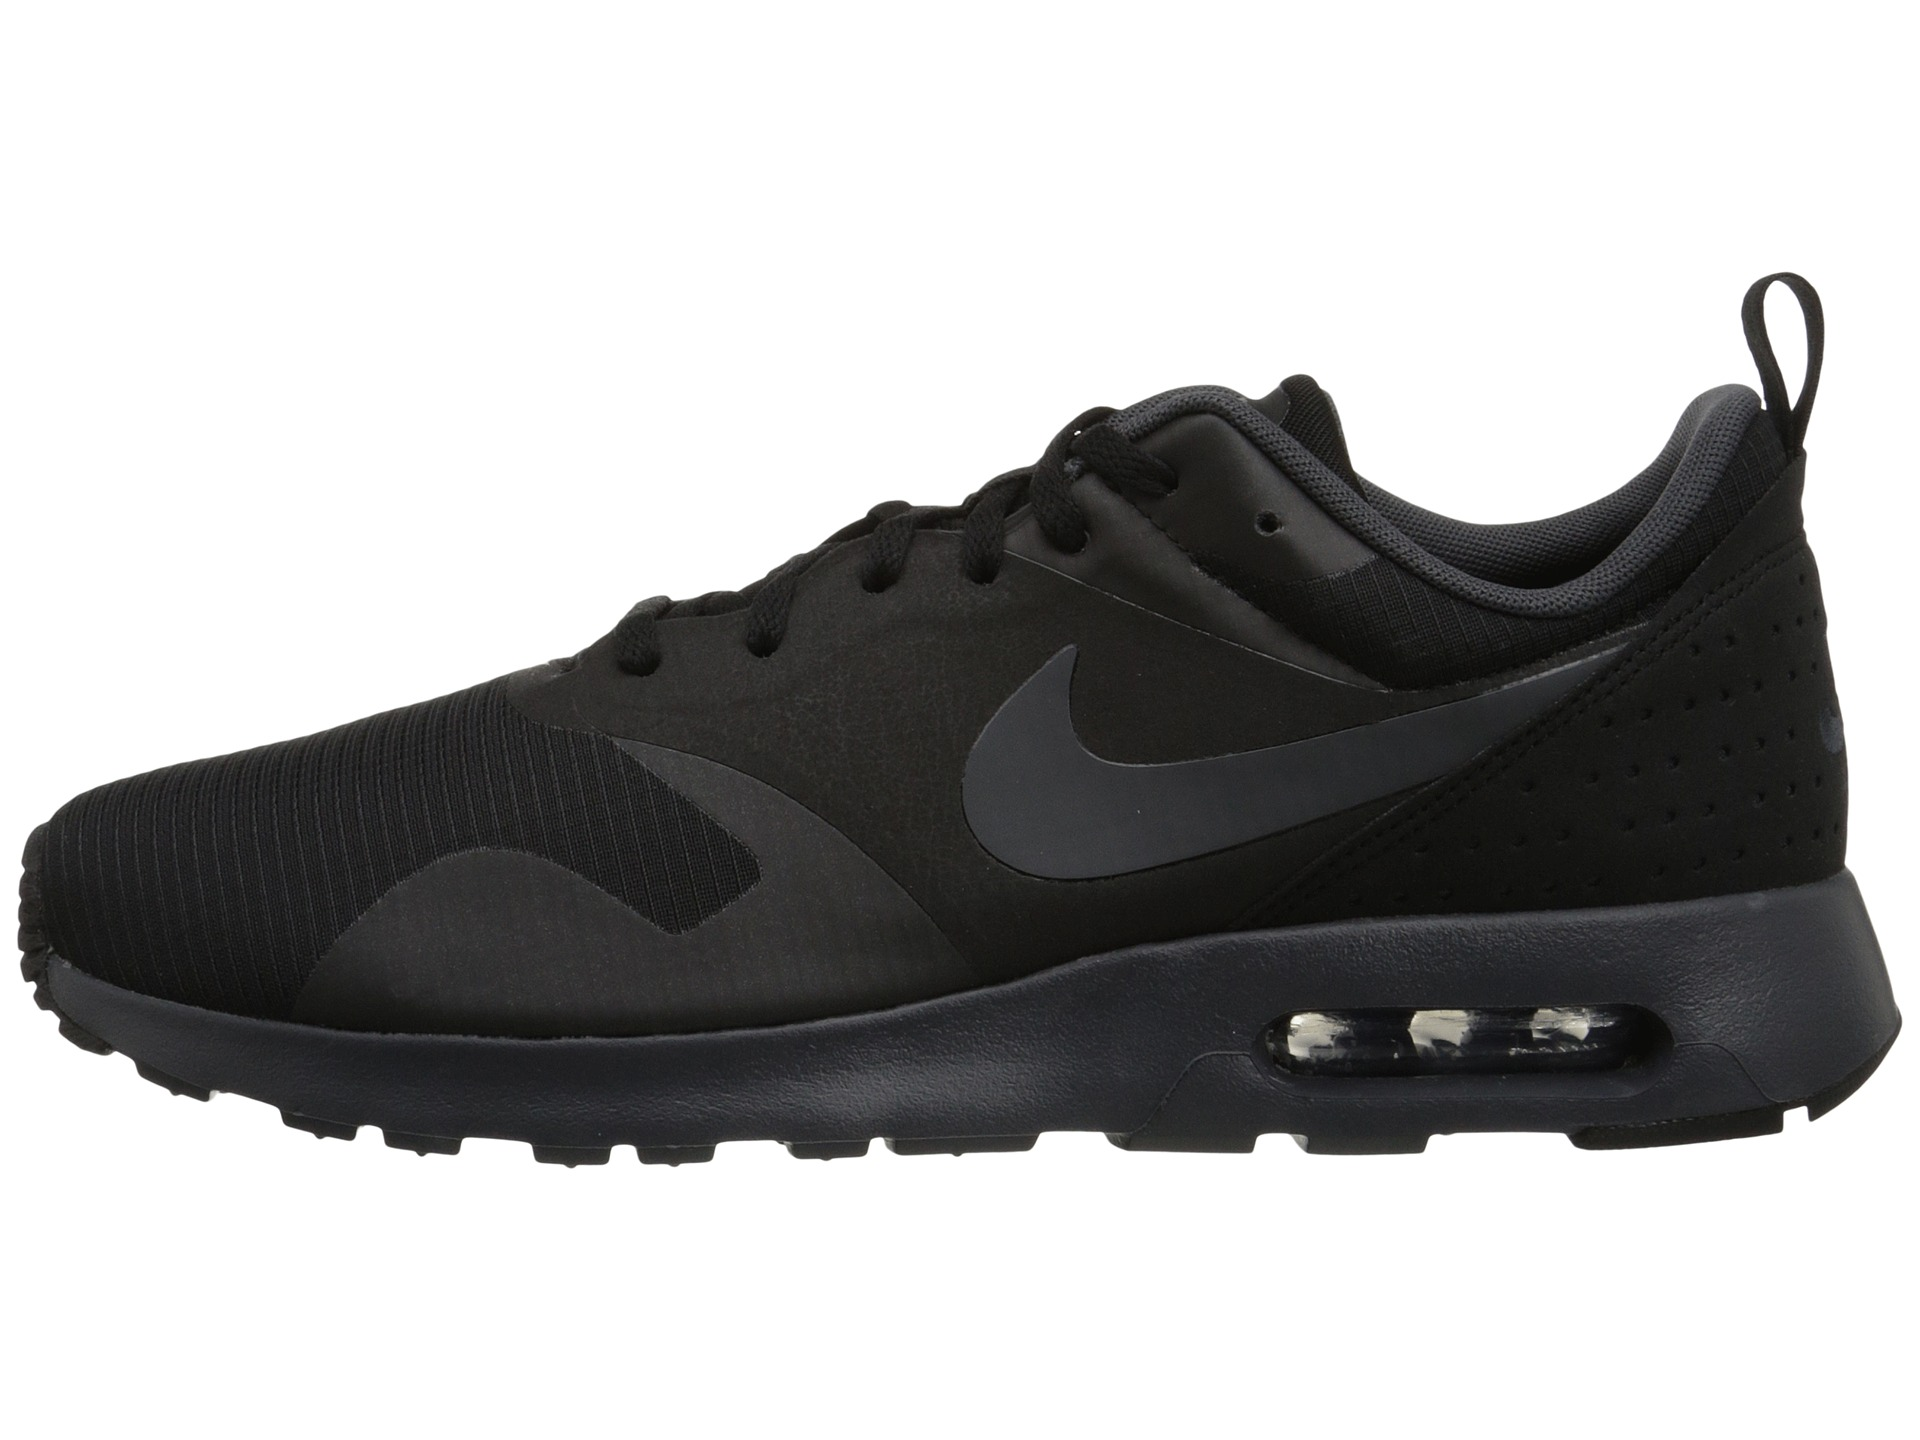 nike air max tavas free shipping both ways. Black Bedroom Furniture Sets. Home Design Ideas